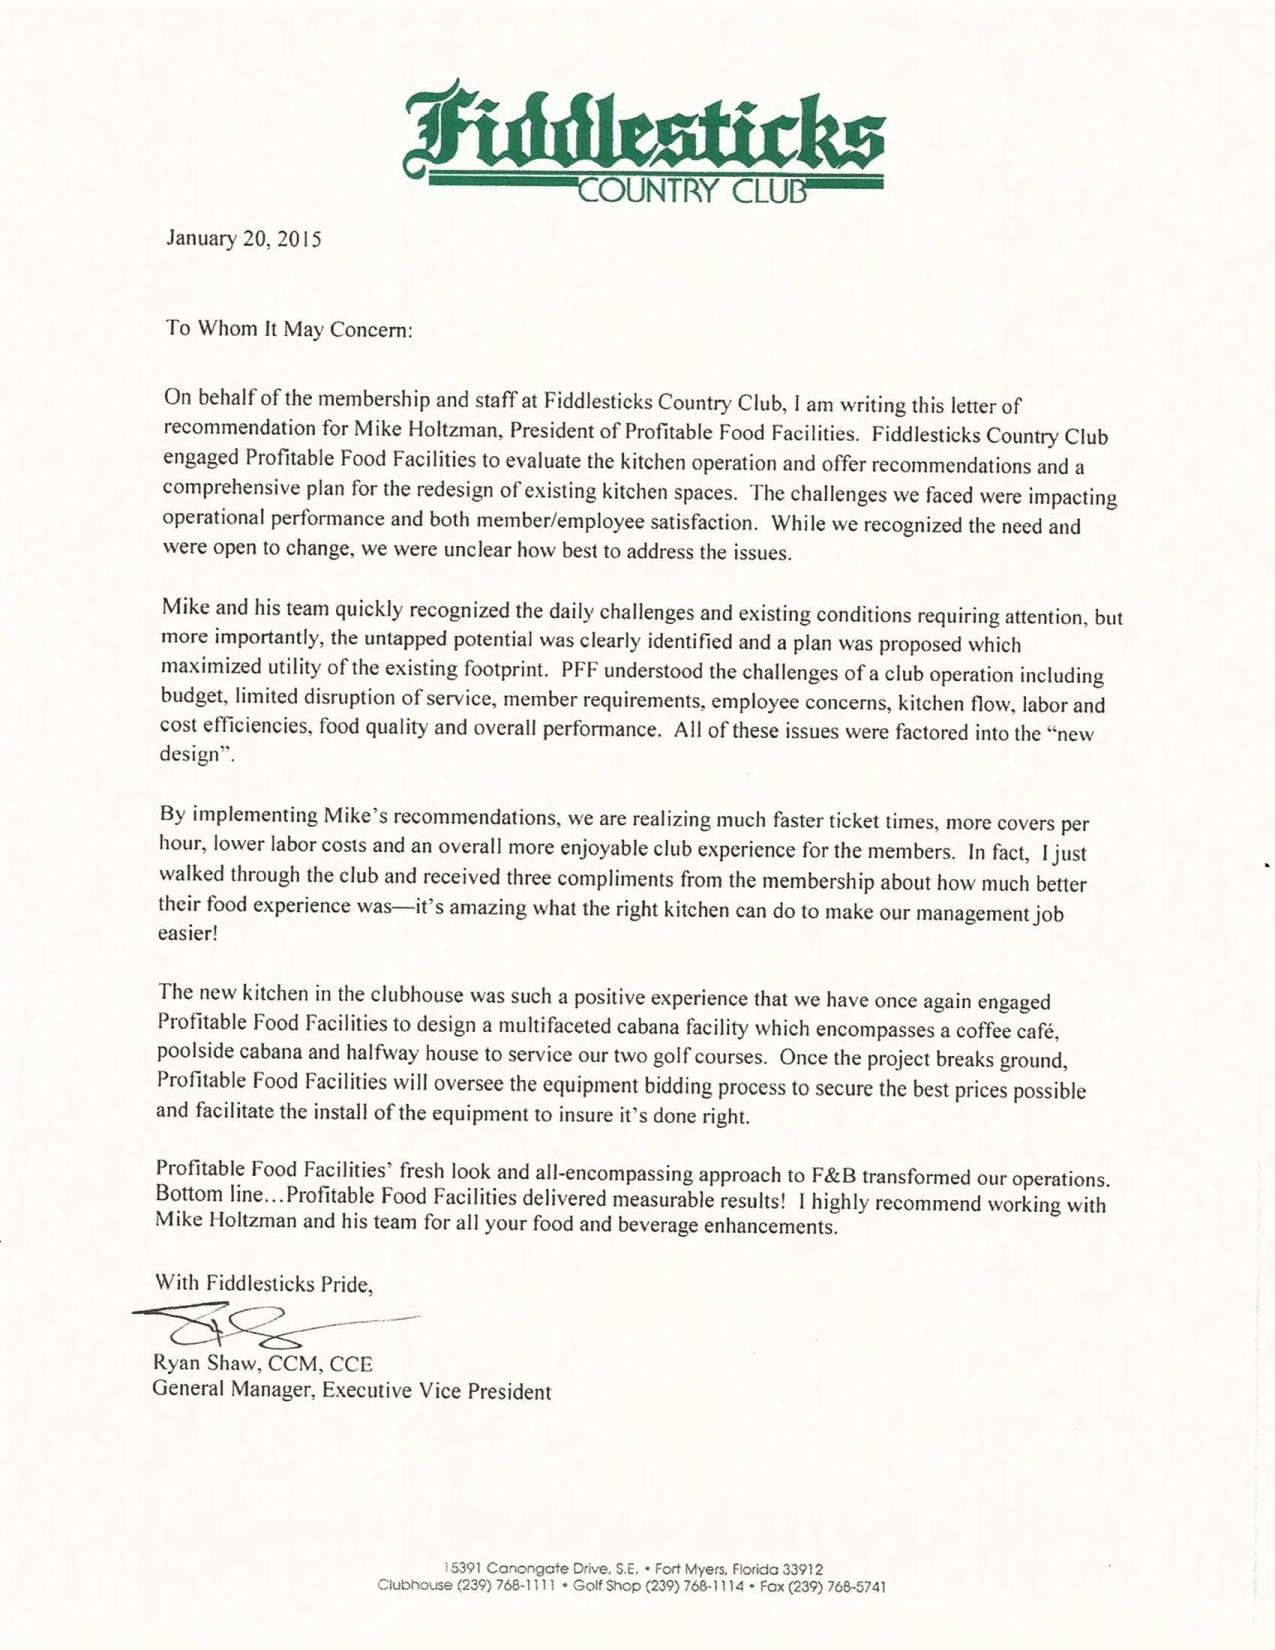 Profitable Foods Facilities Worldwide Recommendation Letter